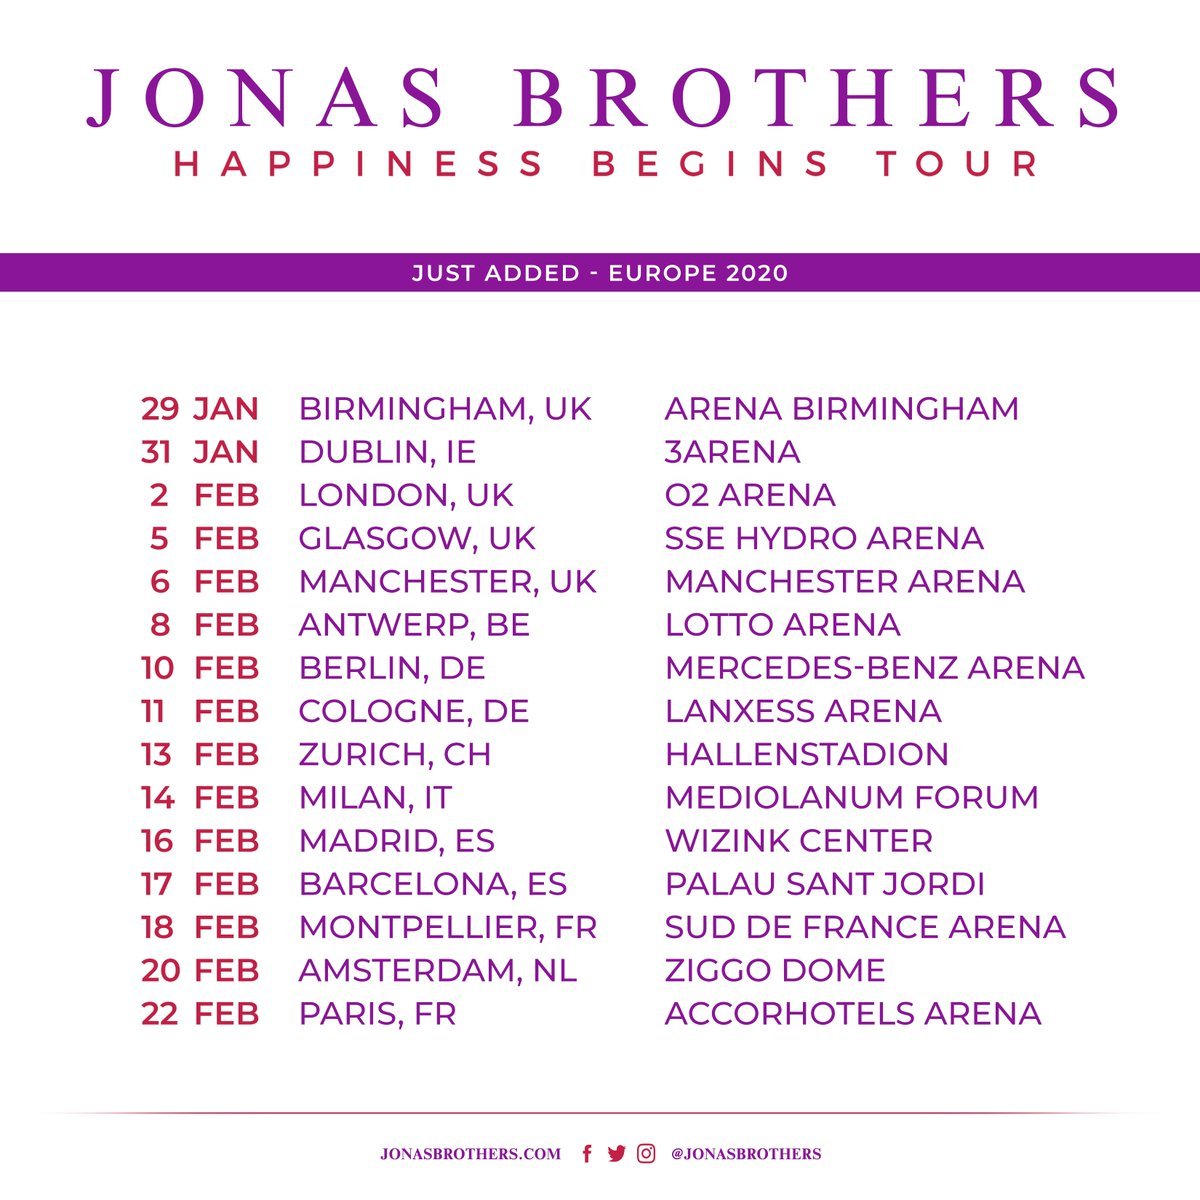 Pink 2020 Tour Jonas Brothers on Twitter: